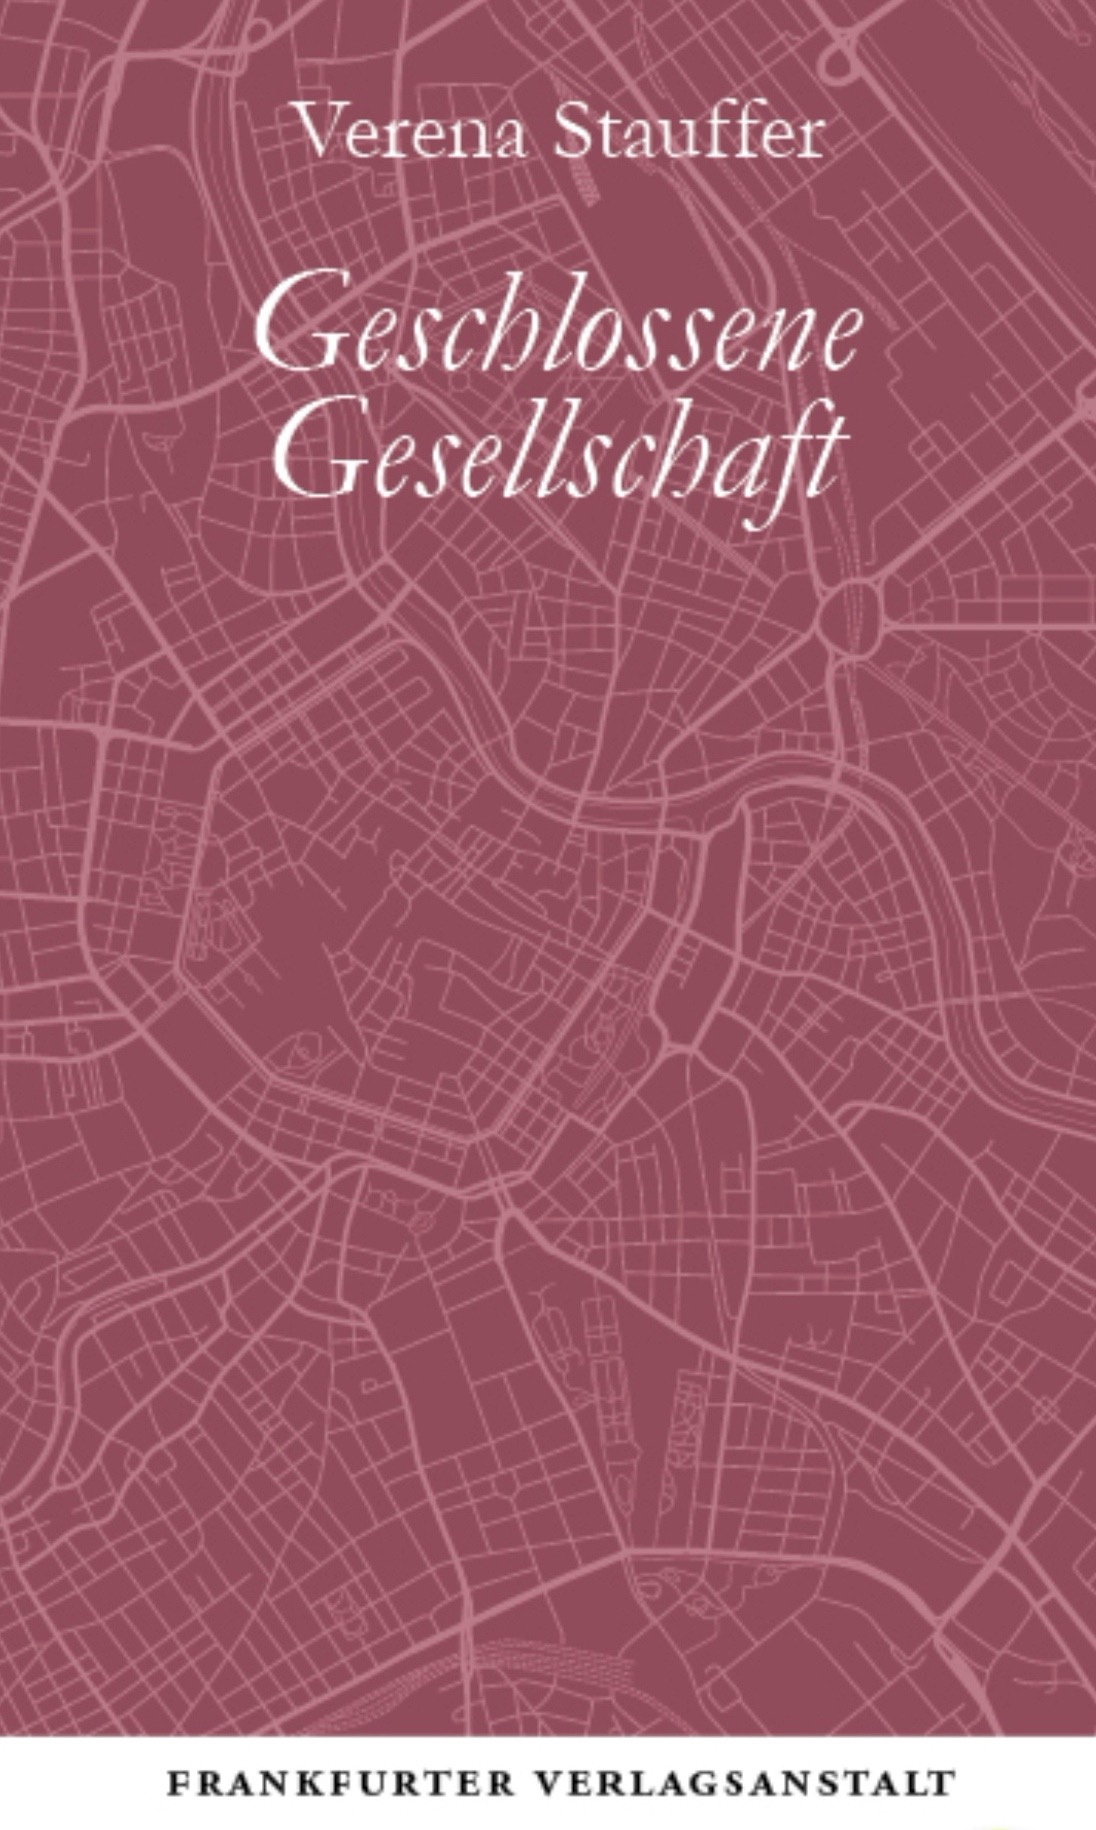 GG COVER - 1